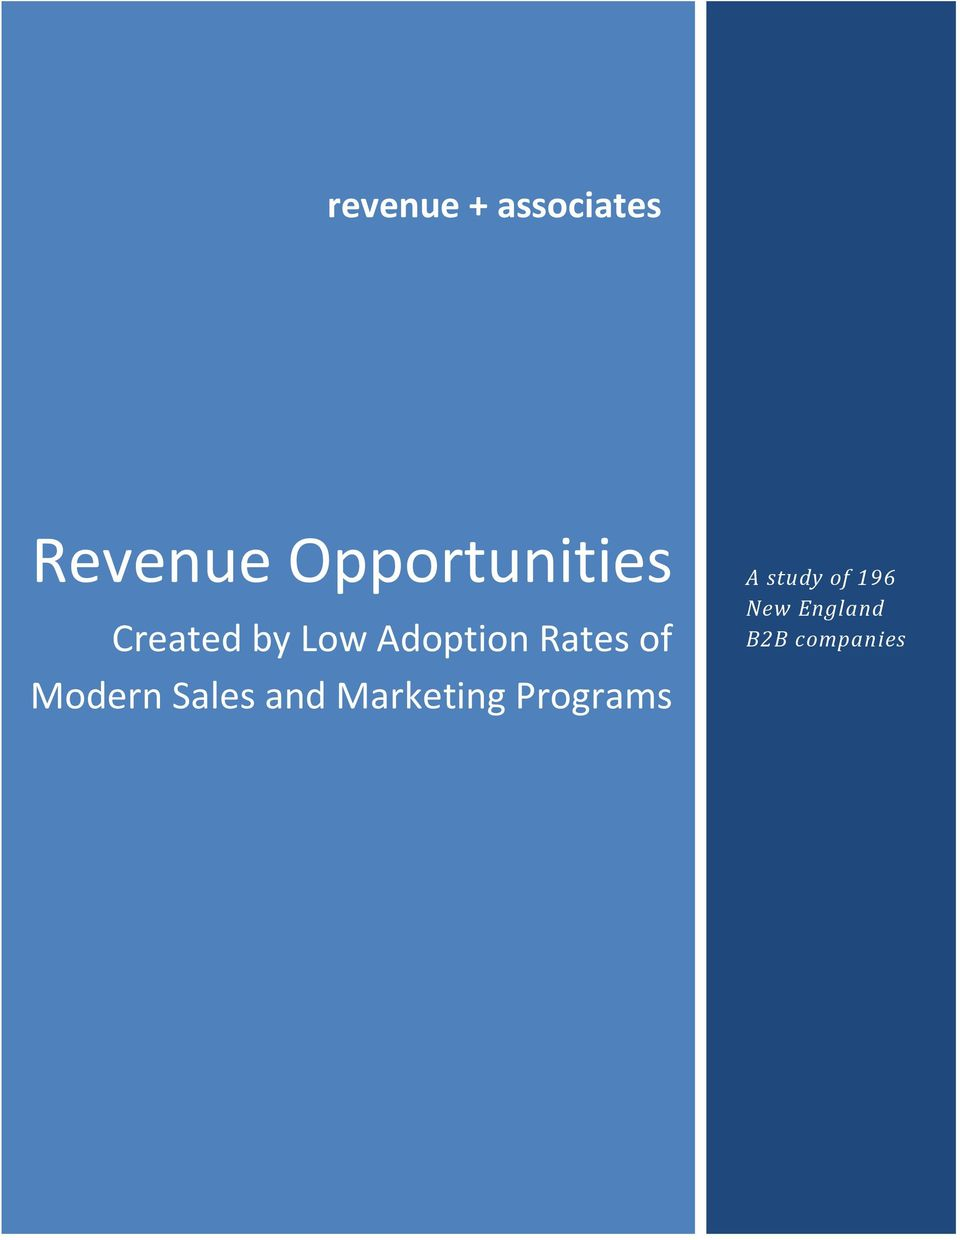 Marketing Programs A study of 196 New England B2B